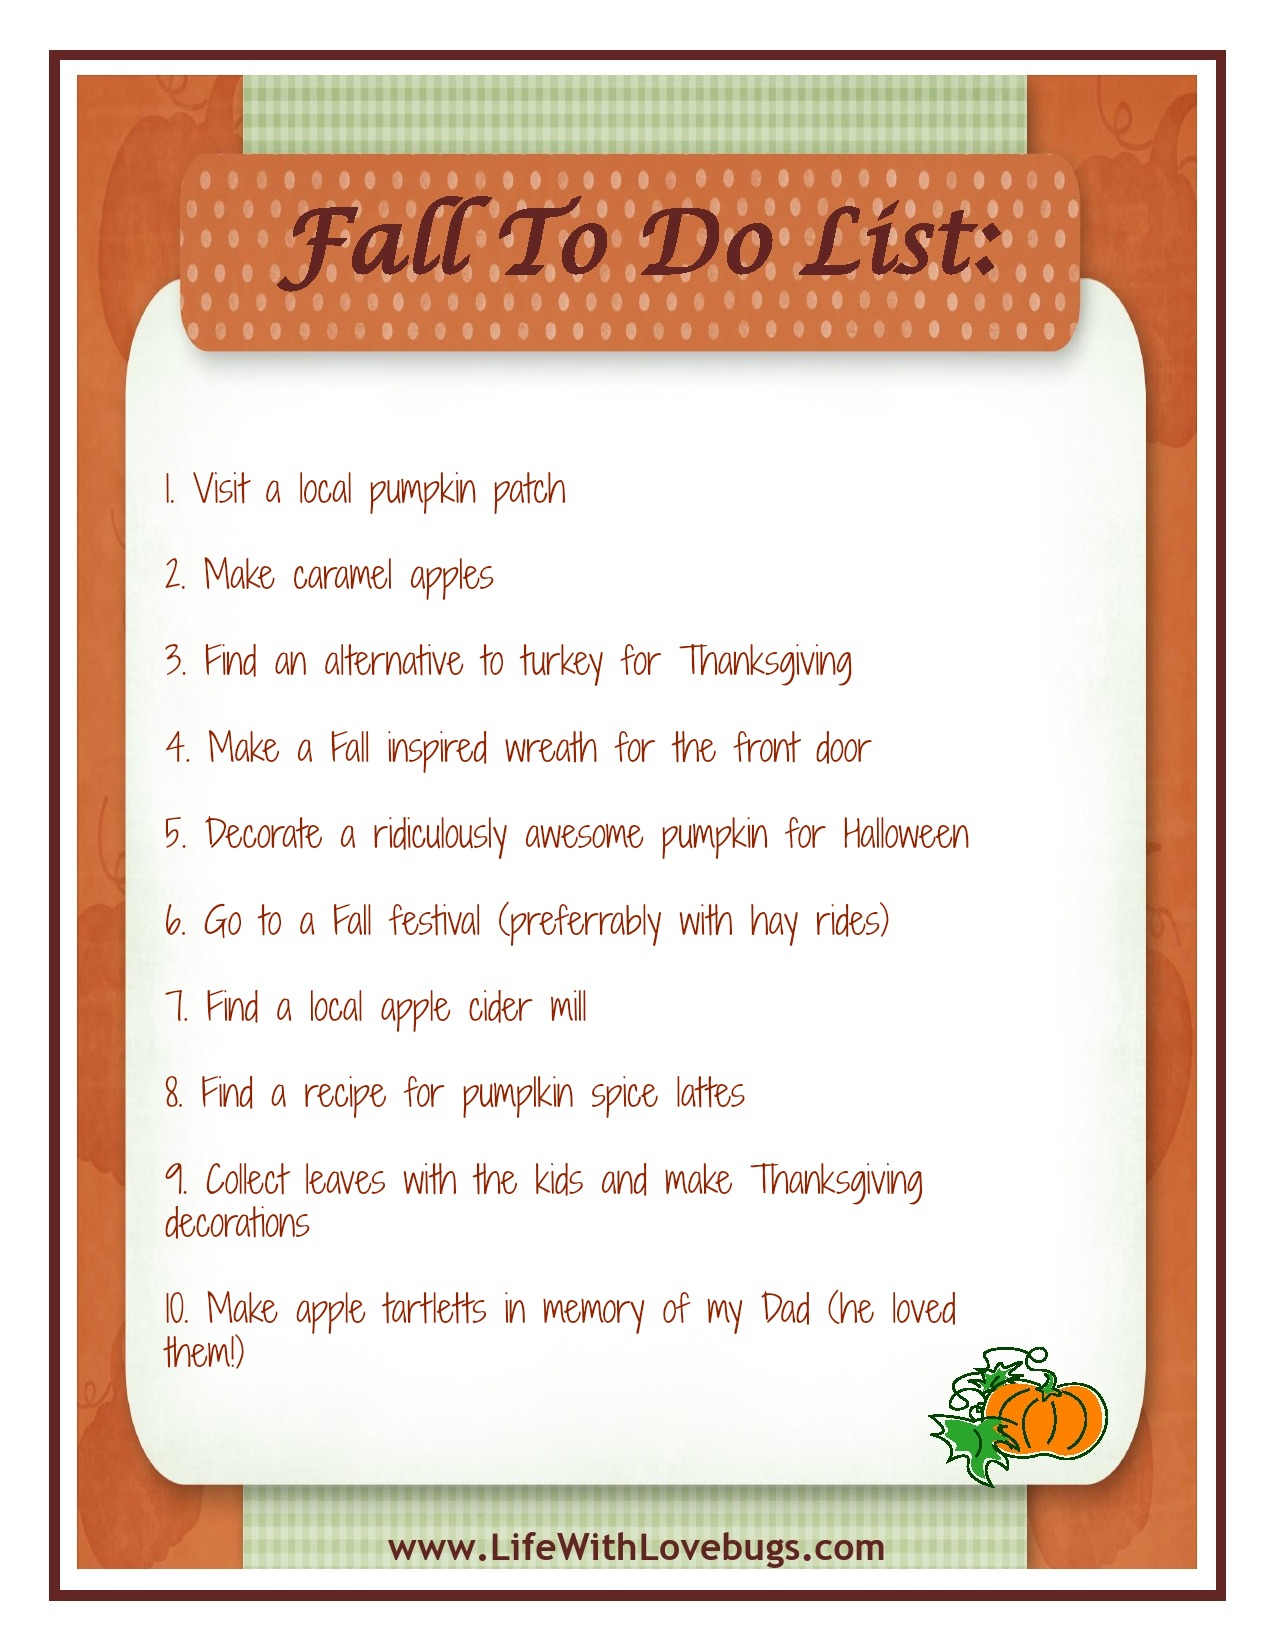 My Fall To Do List {Free Printable} - Life With Lovebugs